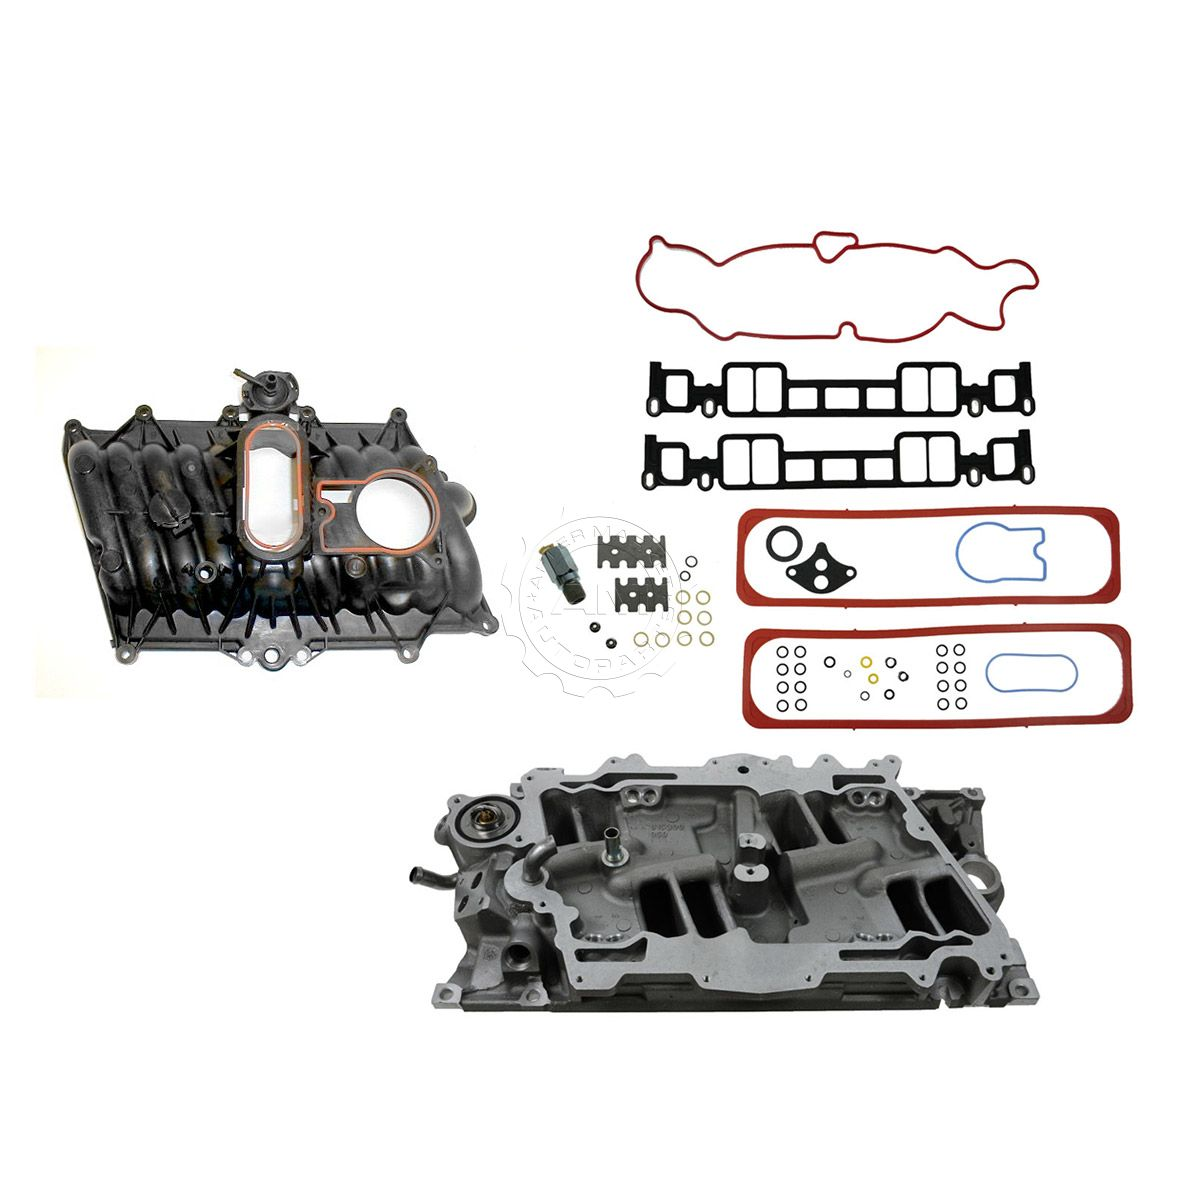 Dorman Upper Lower Intake Manifold Kit For Chevy Gmc Truck